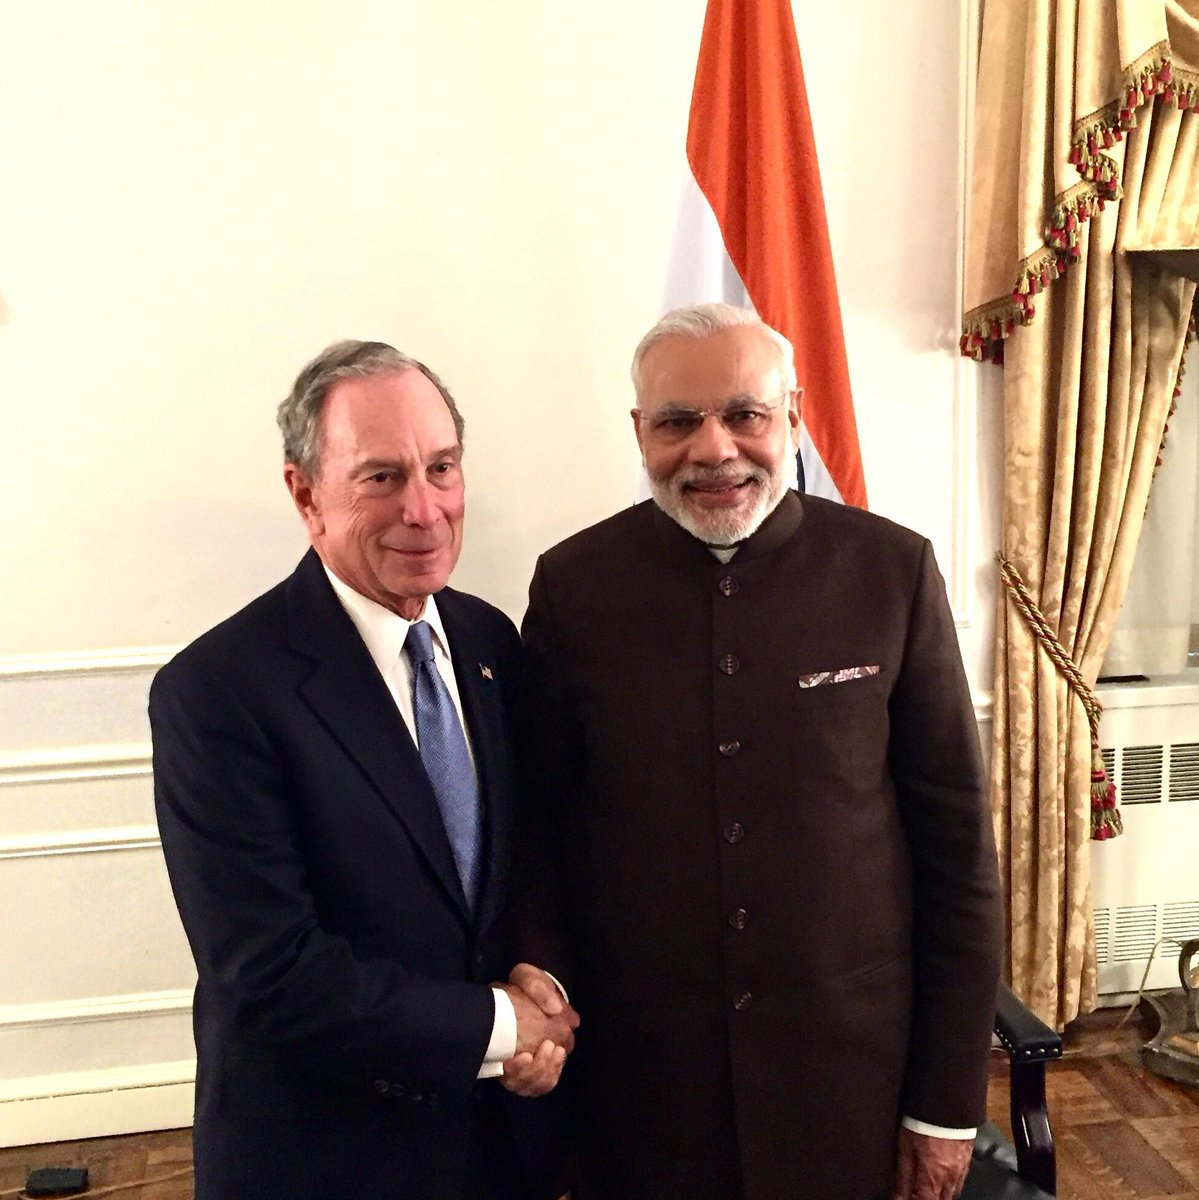 .@NarendraModi's leadership is changing India—and the world. Glad to see him in #NYC today #climate #cities http://t.co/1ibERS9tAe